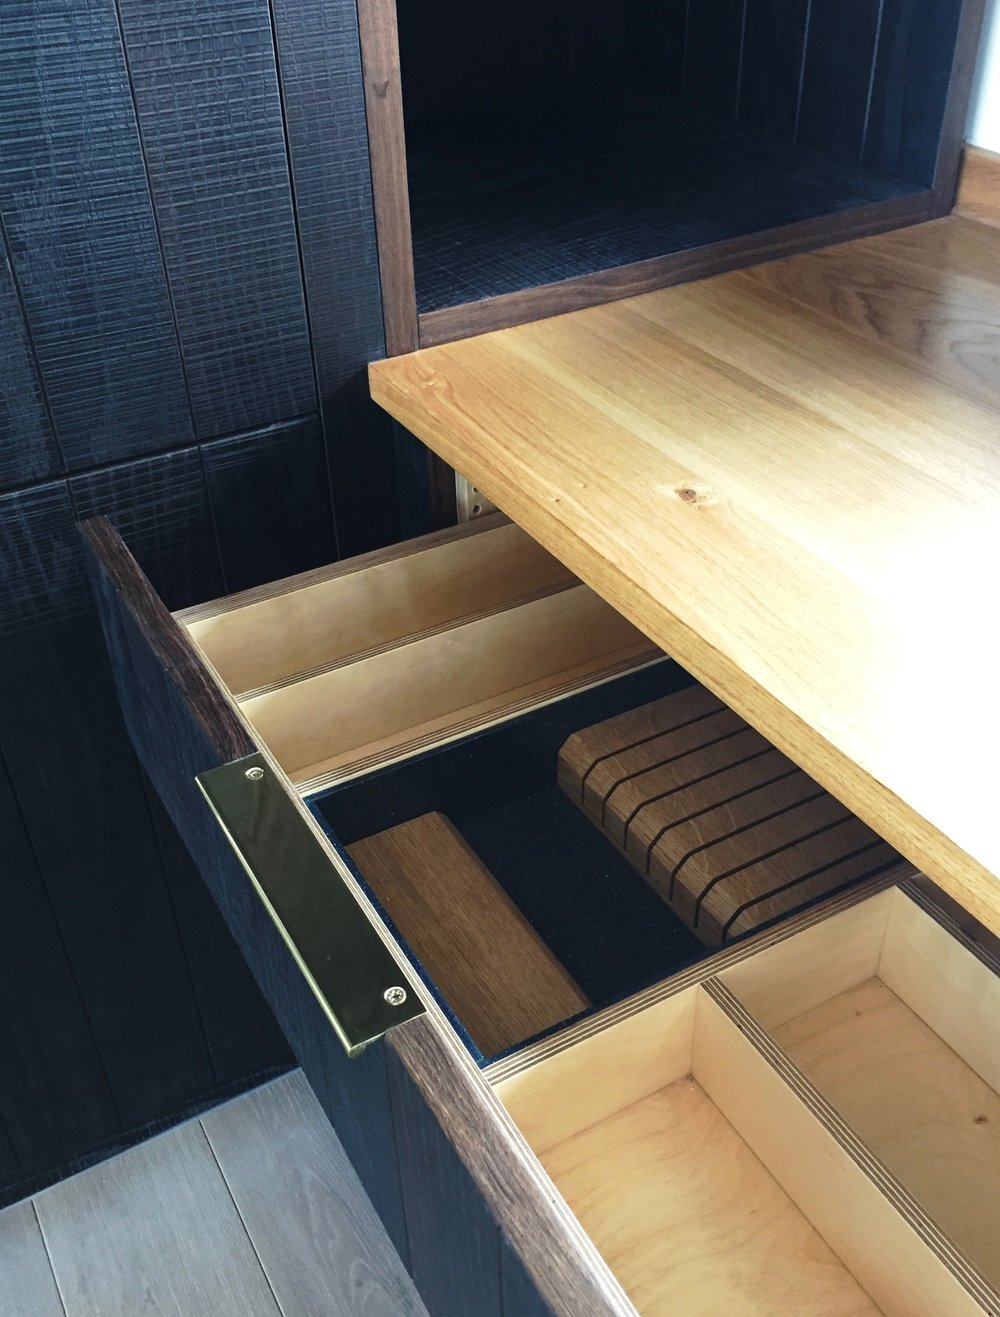 SQ1-Kitchen-fumed-oak-brass draws and cabinets